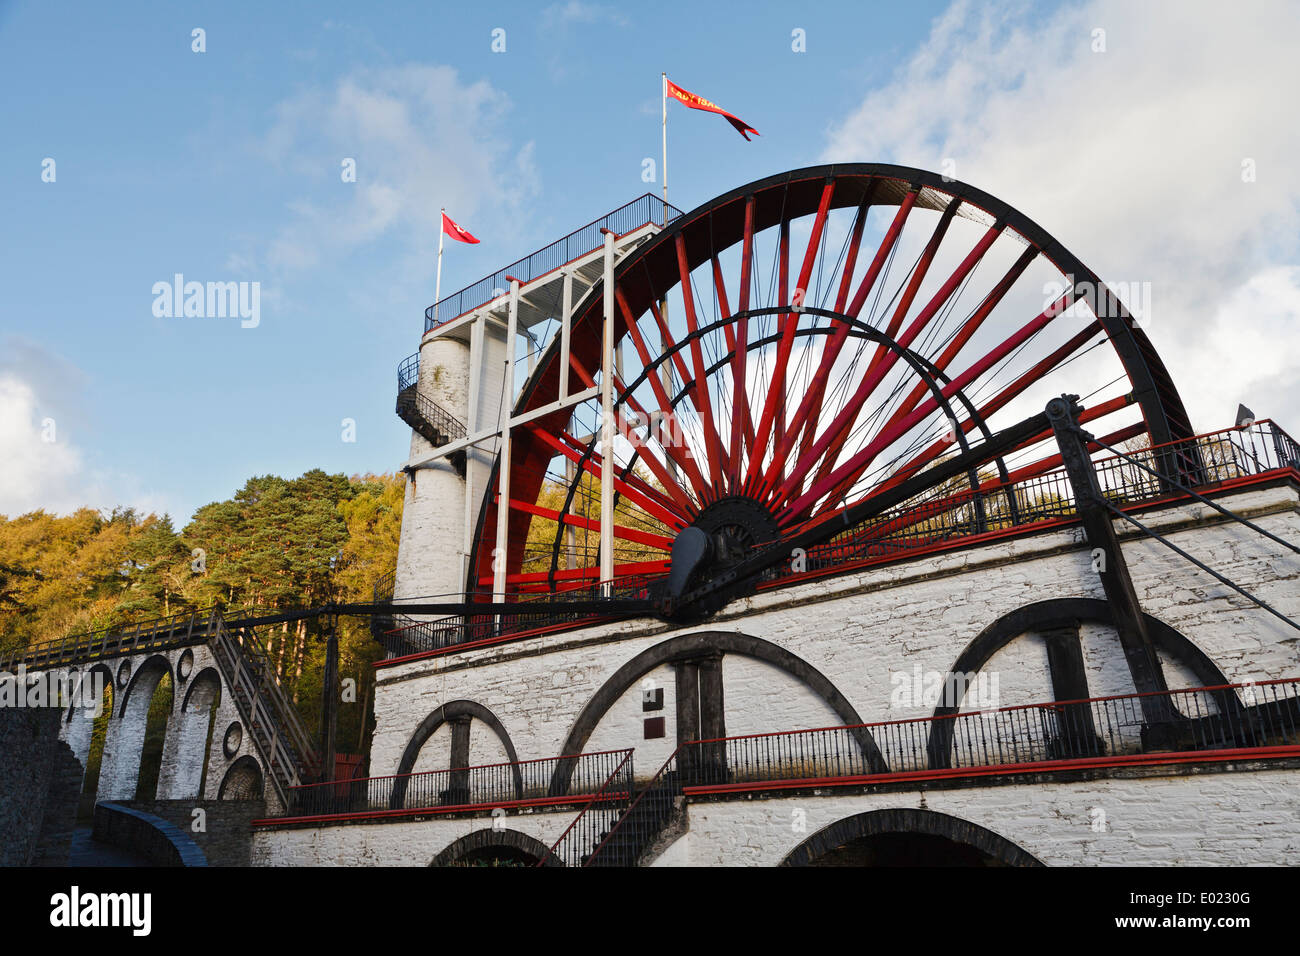 The Great Laxey Wheel, Isle of Man Stock Photo